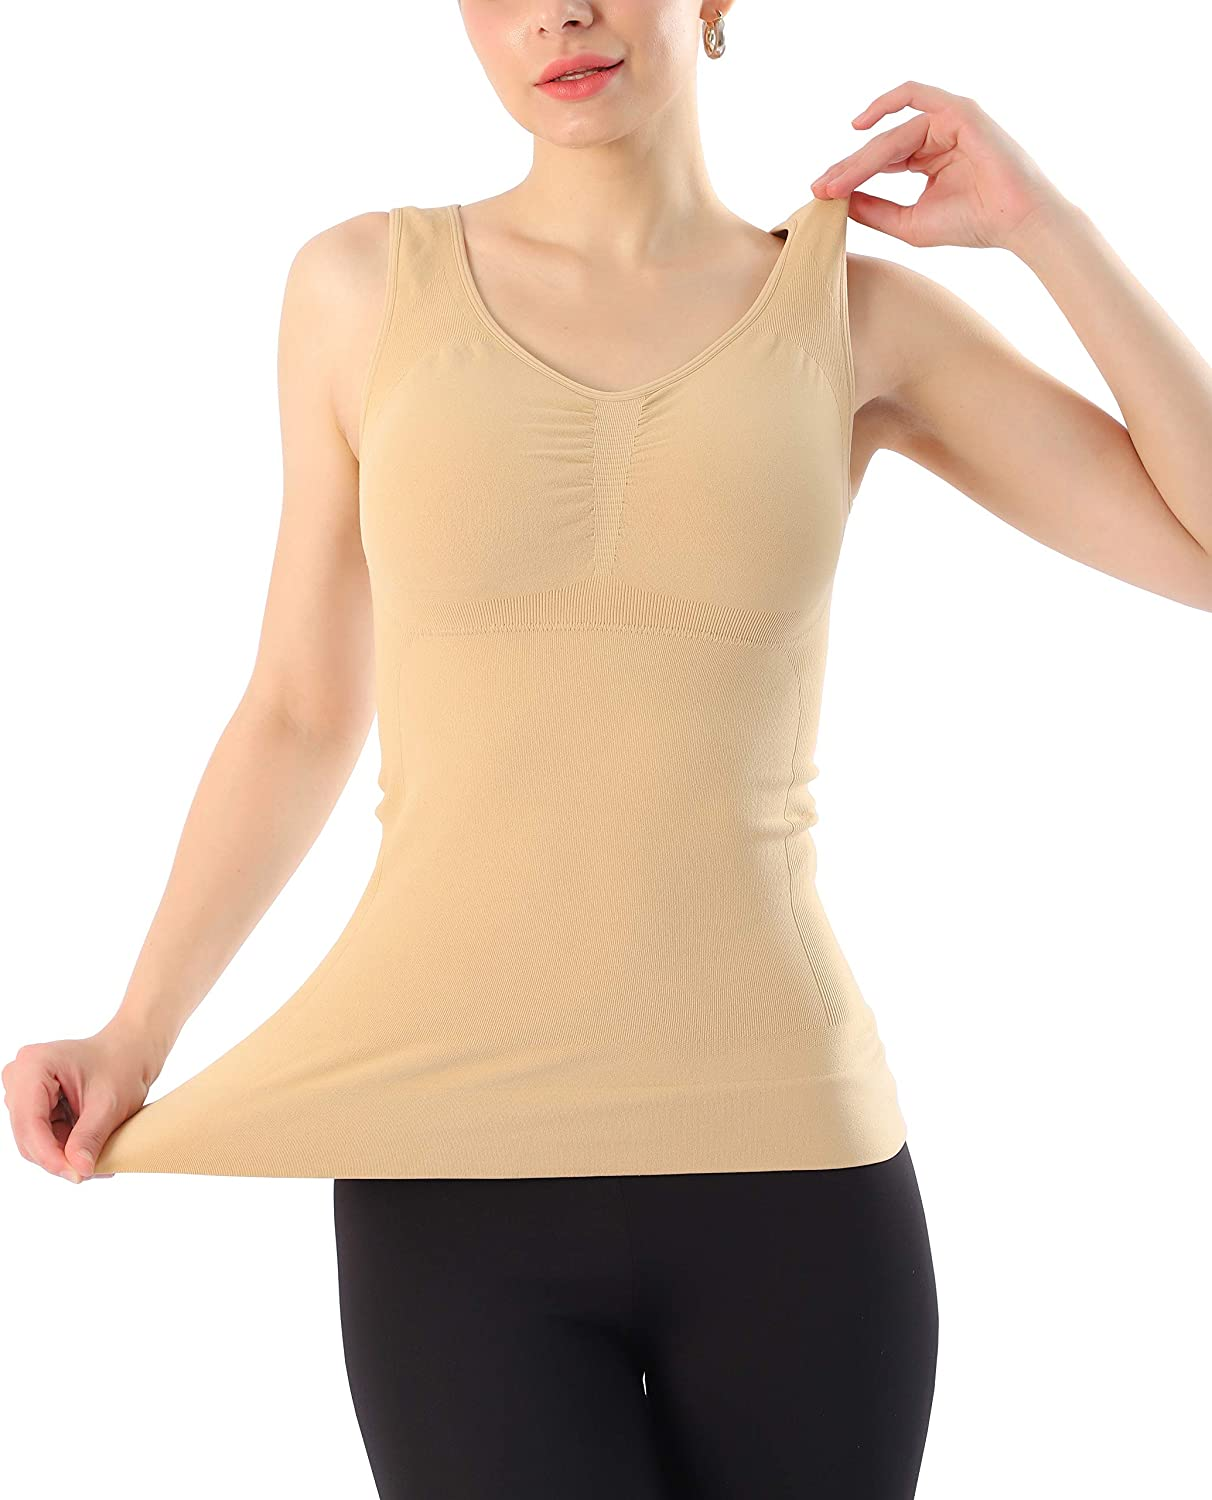 Cabales Women's OFFicial site Tank Top Cami Shaper Pack 3 Courier shipping free shipping Pads Removable with